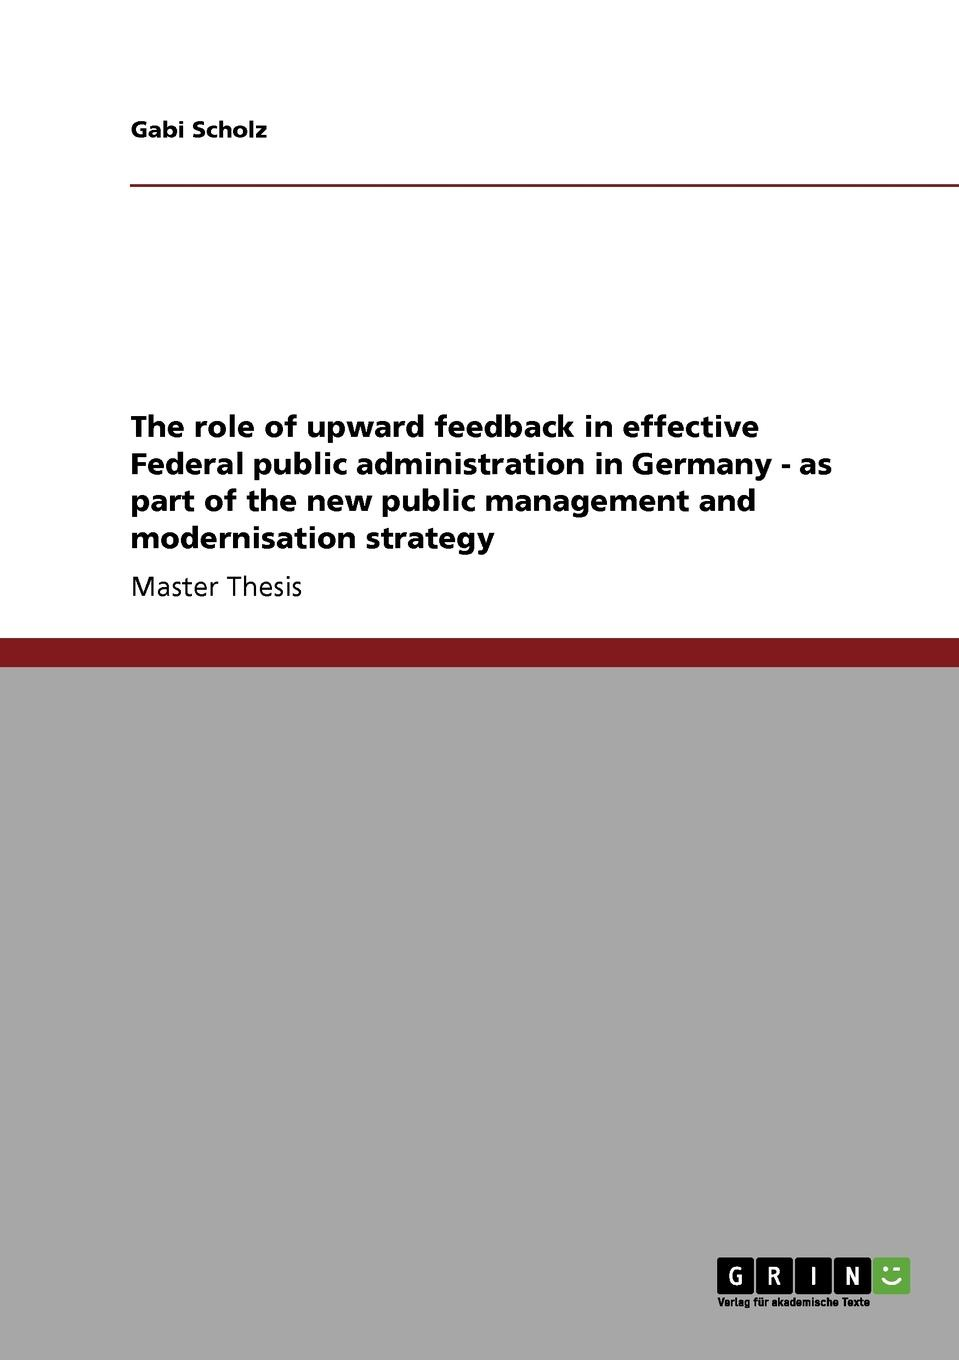 Gabi Scholz The role of upward feedback in effective Federal public administration in Germany - as part of the new public management and modernisation strategy e hart wayne feedback in performance reviews